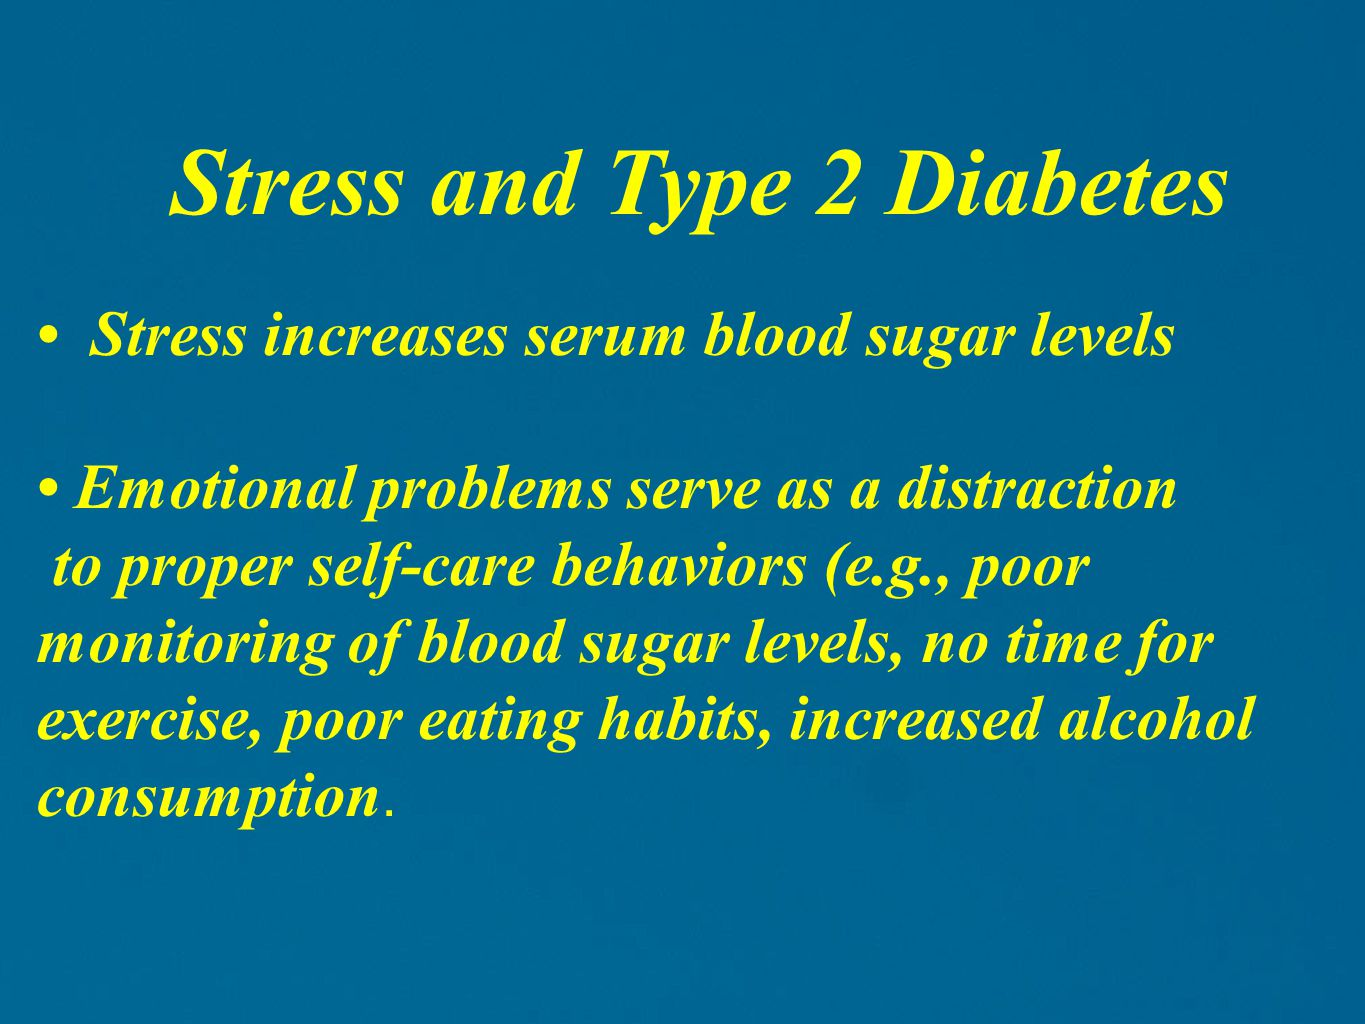 Stress increases serum blood sugar levels Emotional problems serve as a distraction to proper self-care behaviors (e.g., poor monitoring of blood sugar levels, no time for exercise, poor eating habits, increased alcohol consumption.